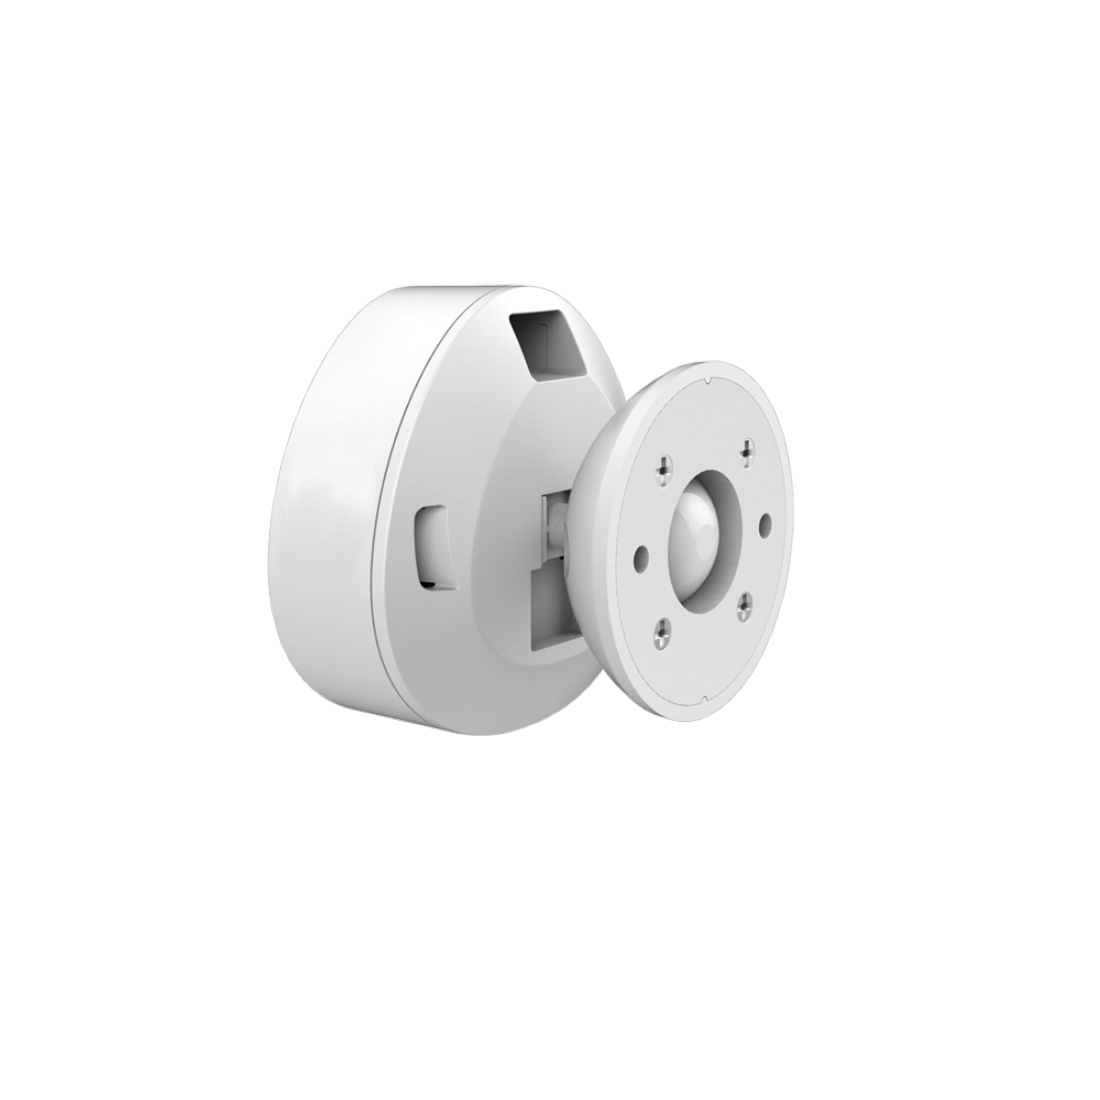 abx2 High-Res Image 2 - Hama, WiFi Motion Detector